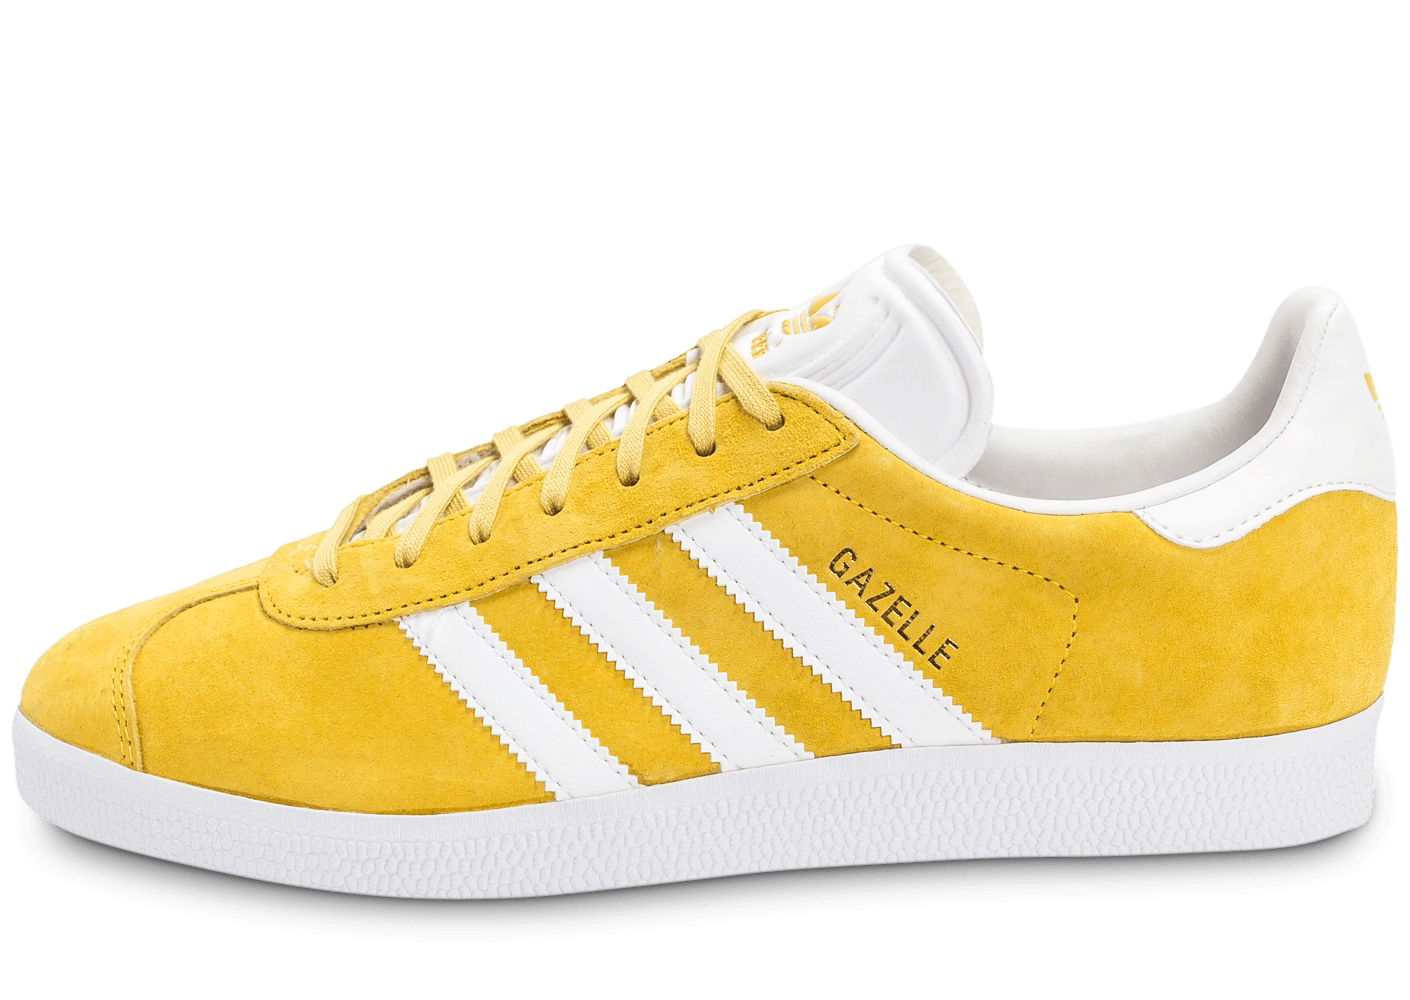 énorme réduction 6d56d 15125 adidas Gazelle jaune